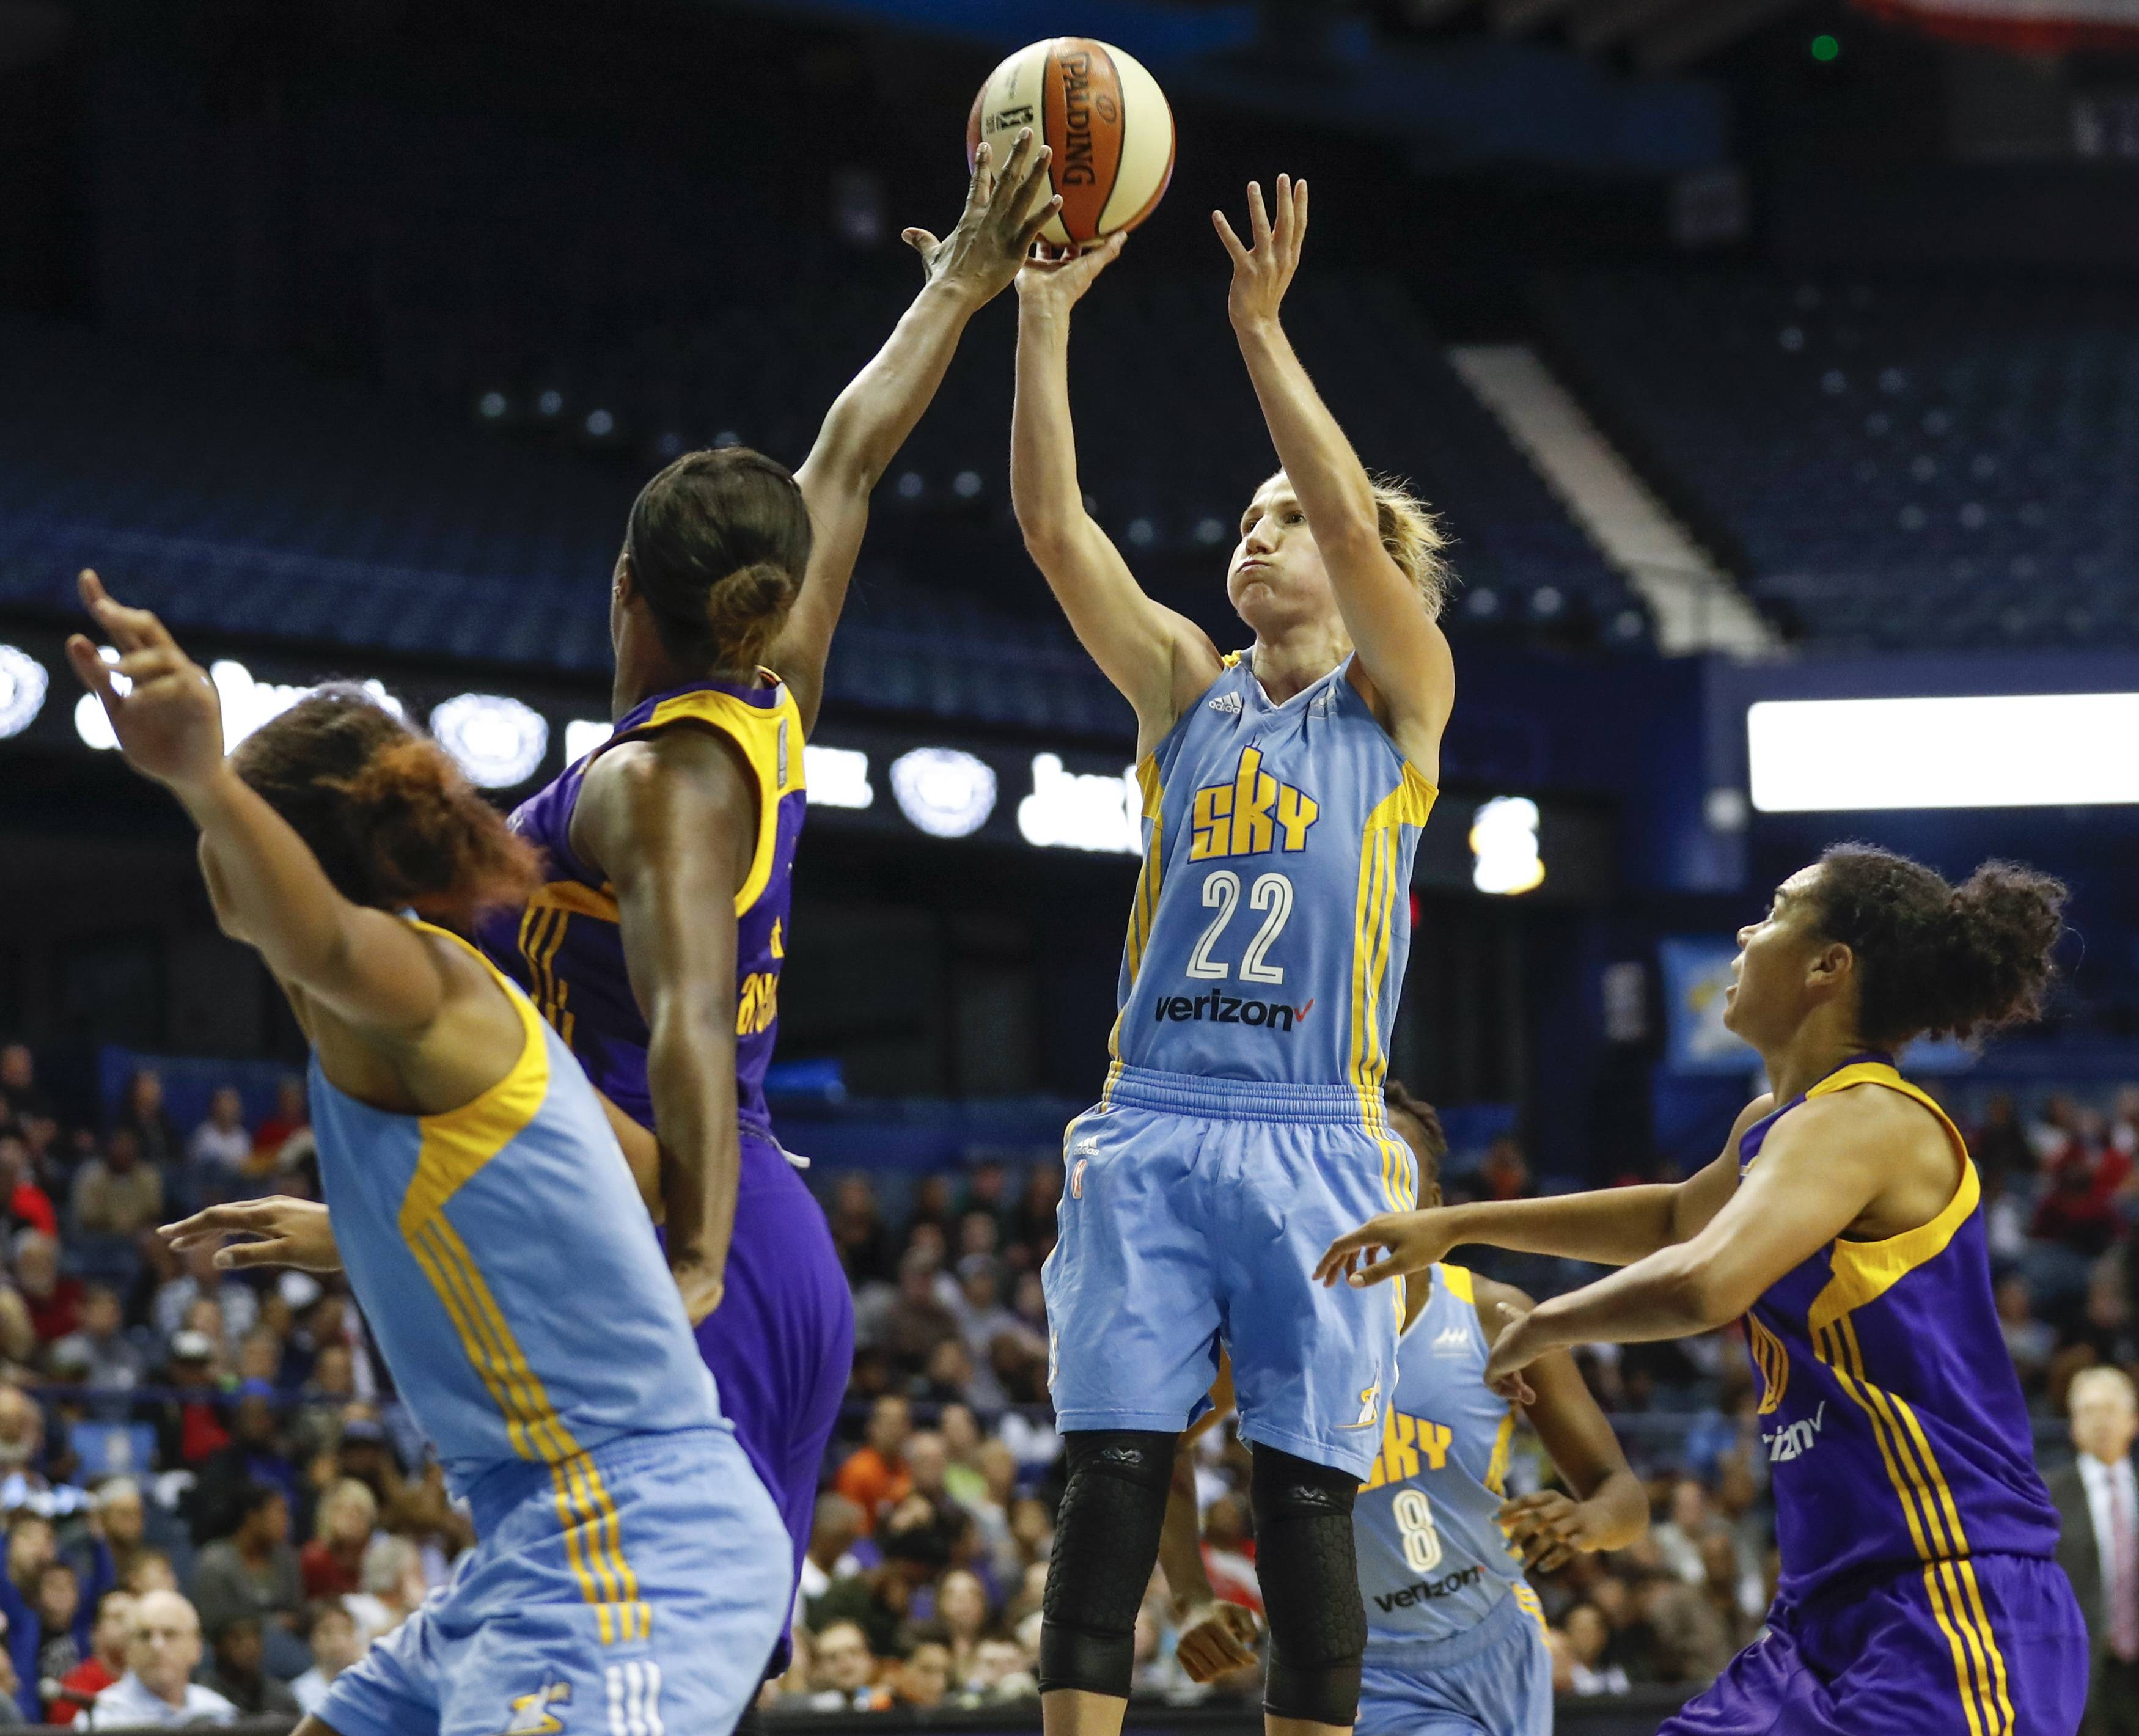 The Chicago Sky has played at Allstate Arena in Rosemont since 2010, but after this season, the team will play in the new Wintrust Arena on the near South Side of Chicago.